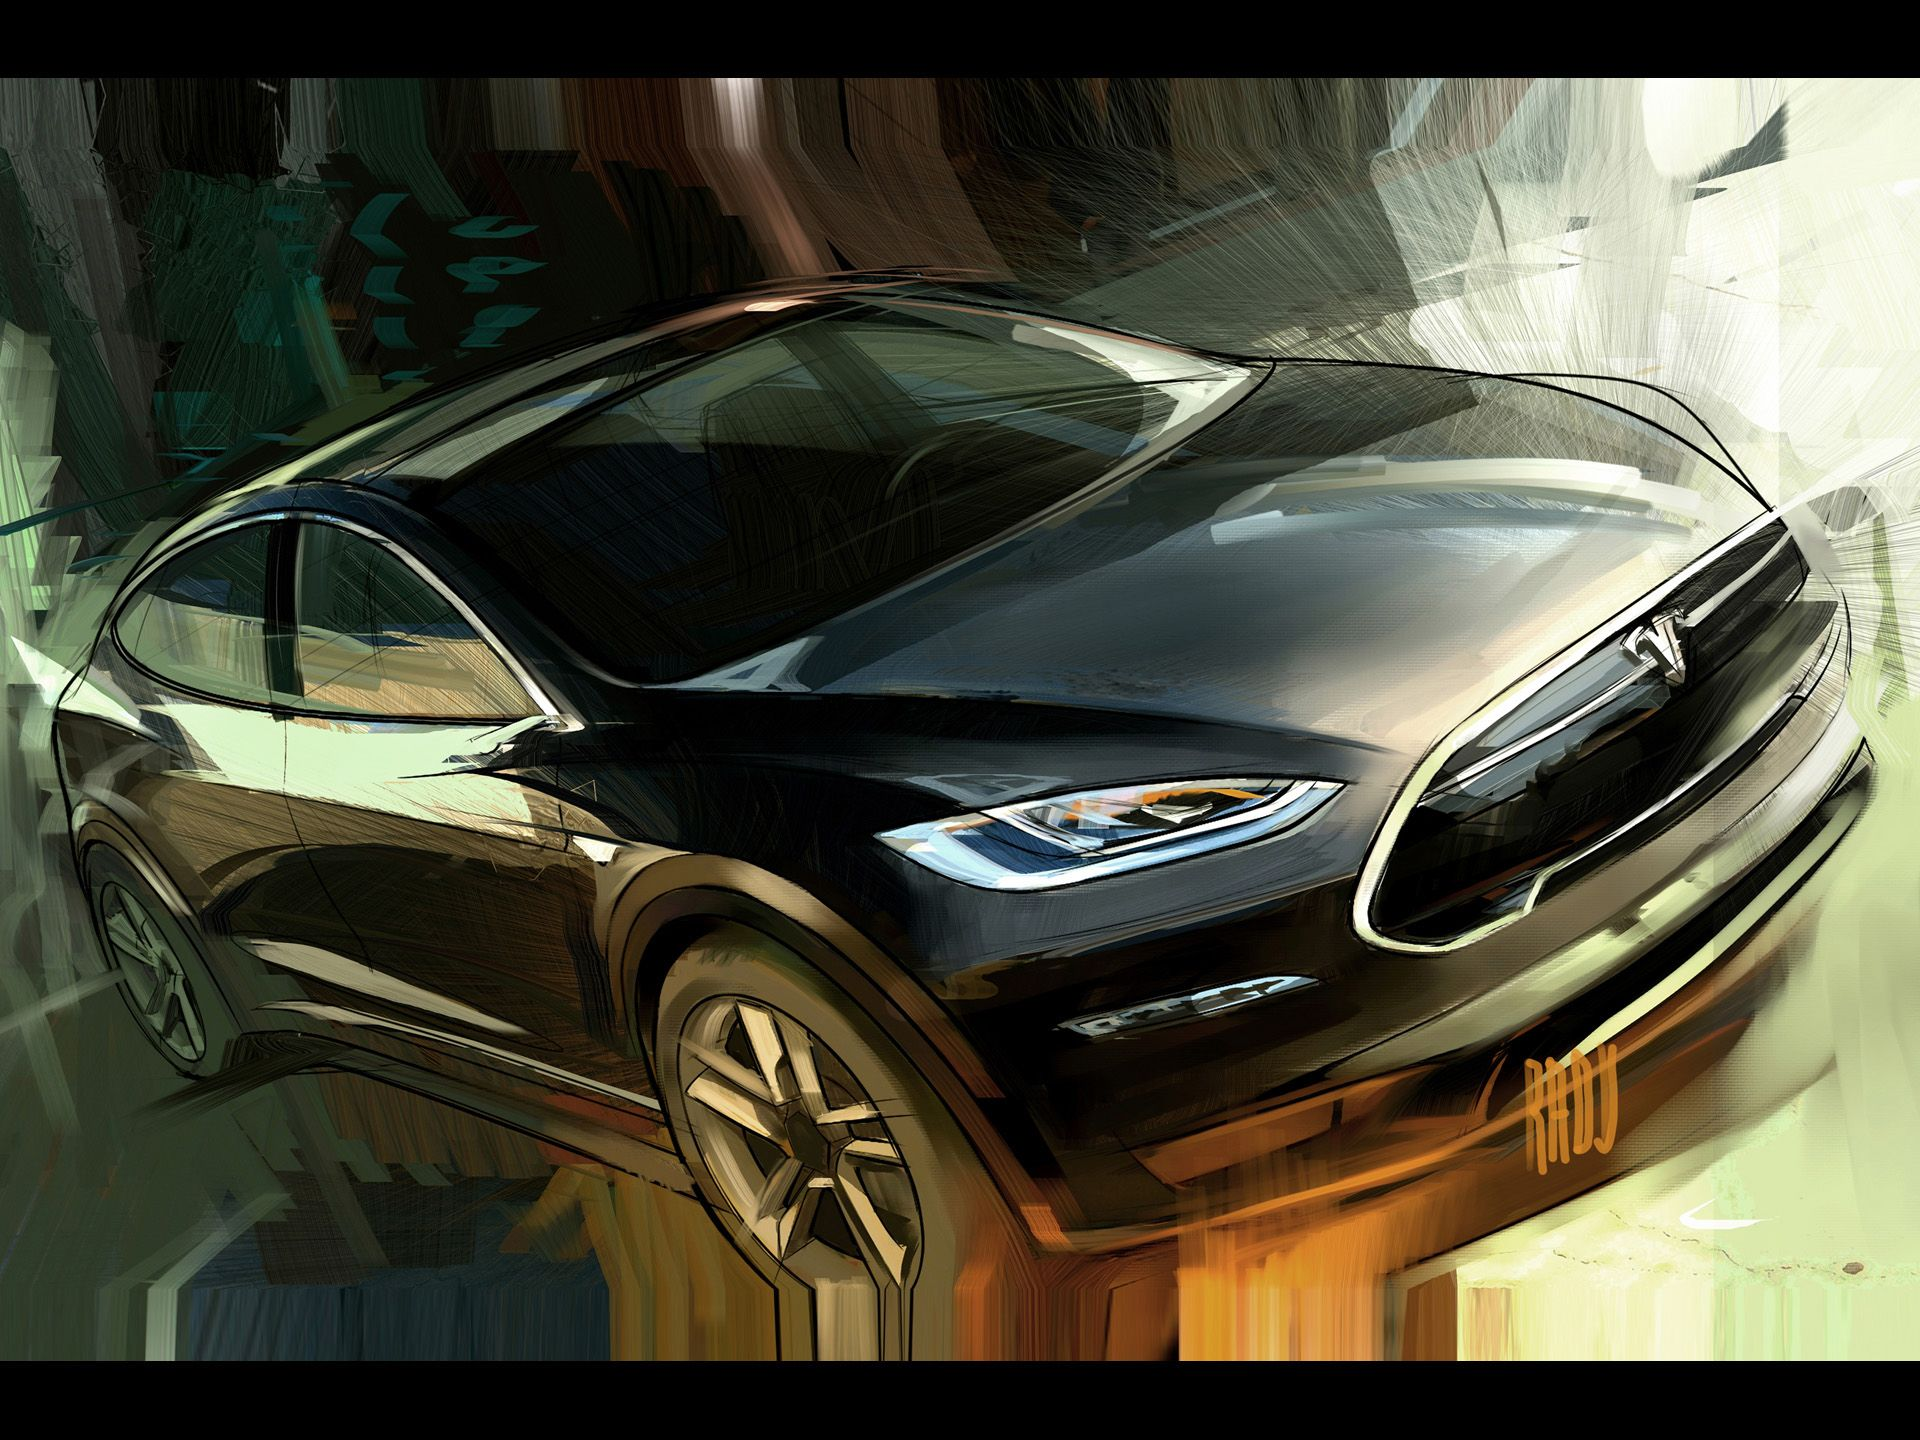 2012 Tesla Model X - Sketch 2 - 1920x1440 - Wallpaper